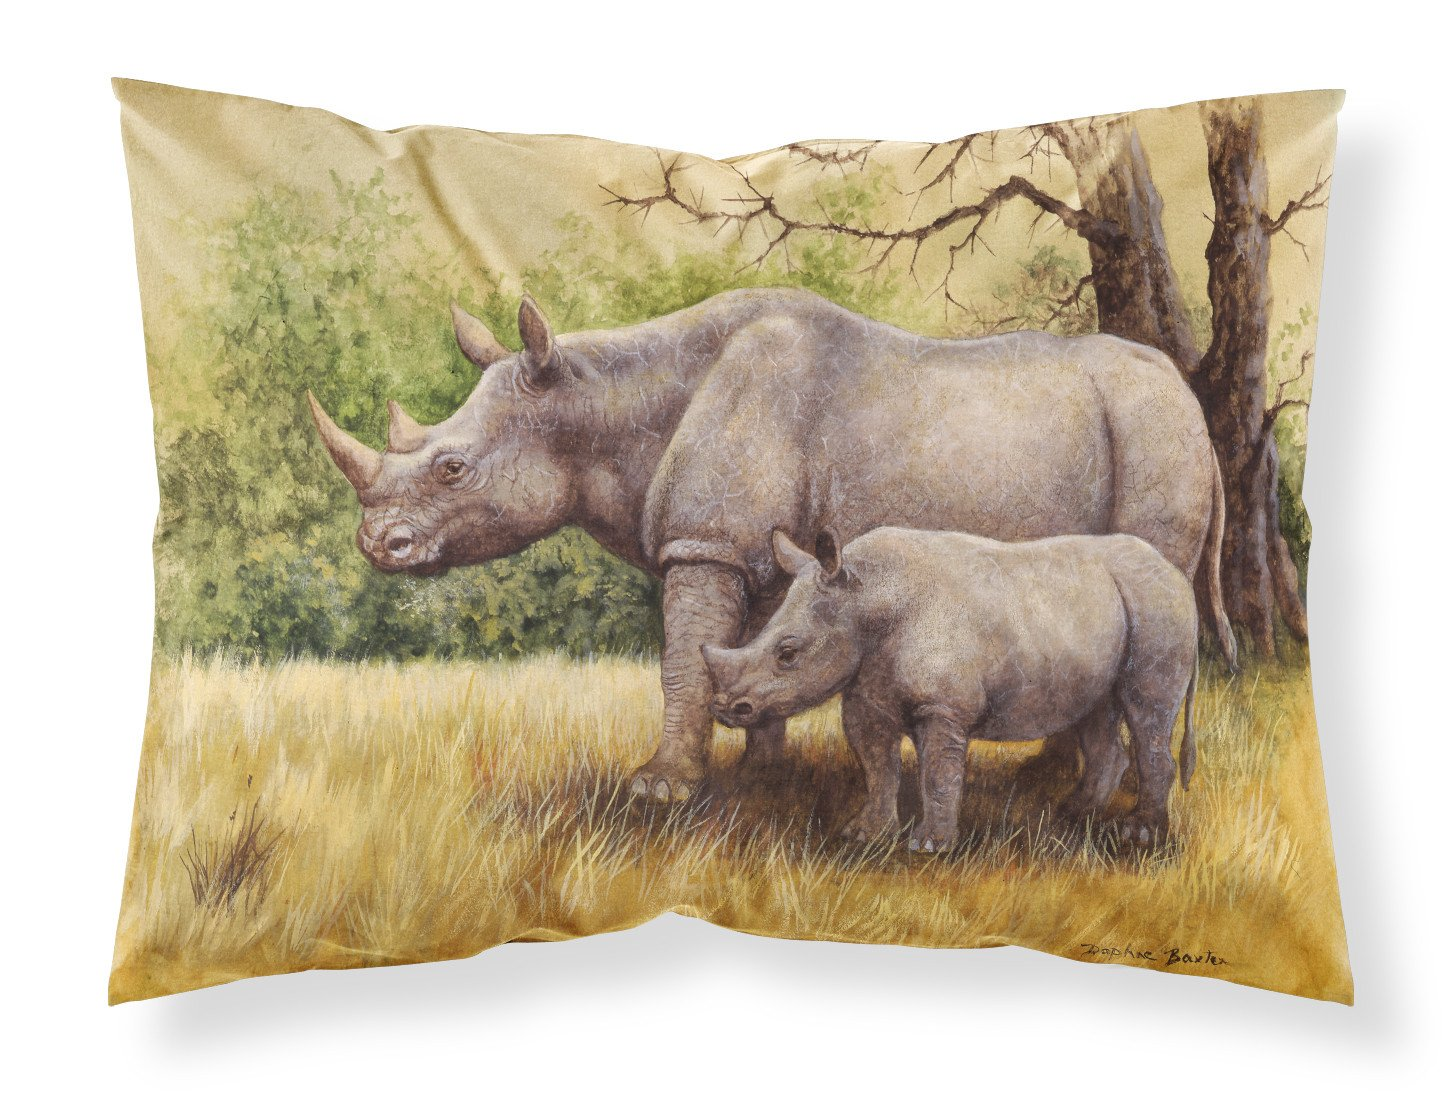 Rhinoceros by Daphne Baxter Fabric Standard Pillowcase BDBA0306PILLOWCASE by Caroline's Treasures